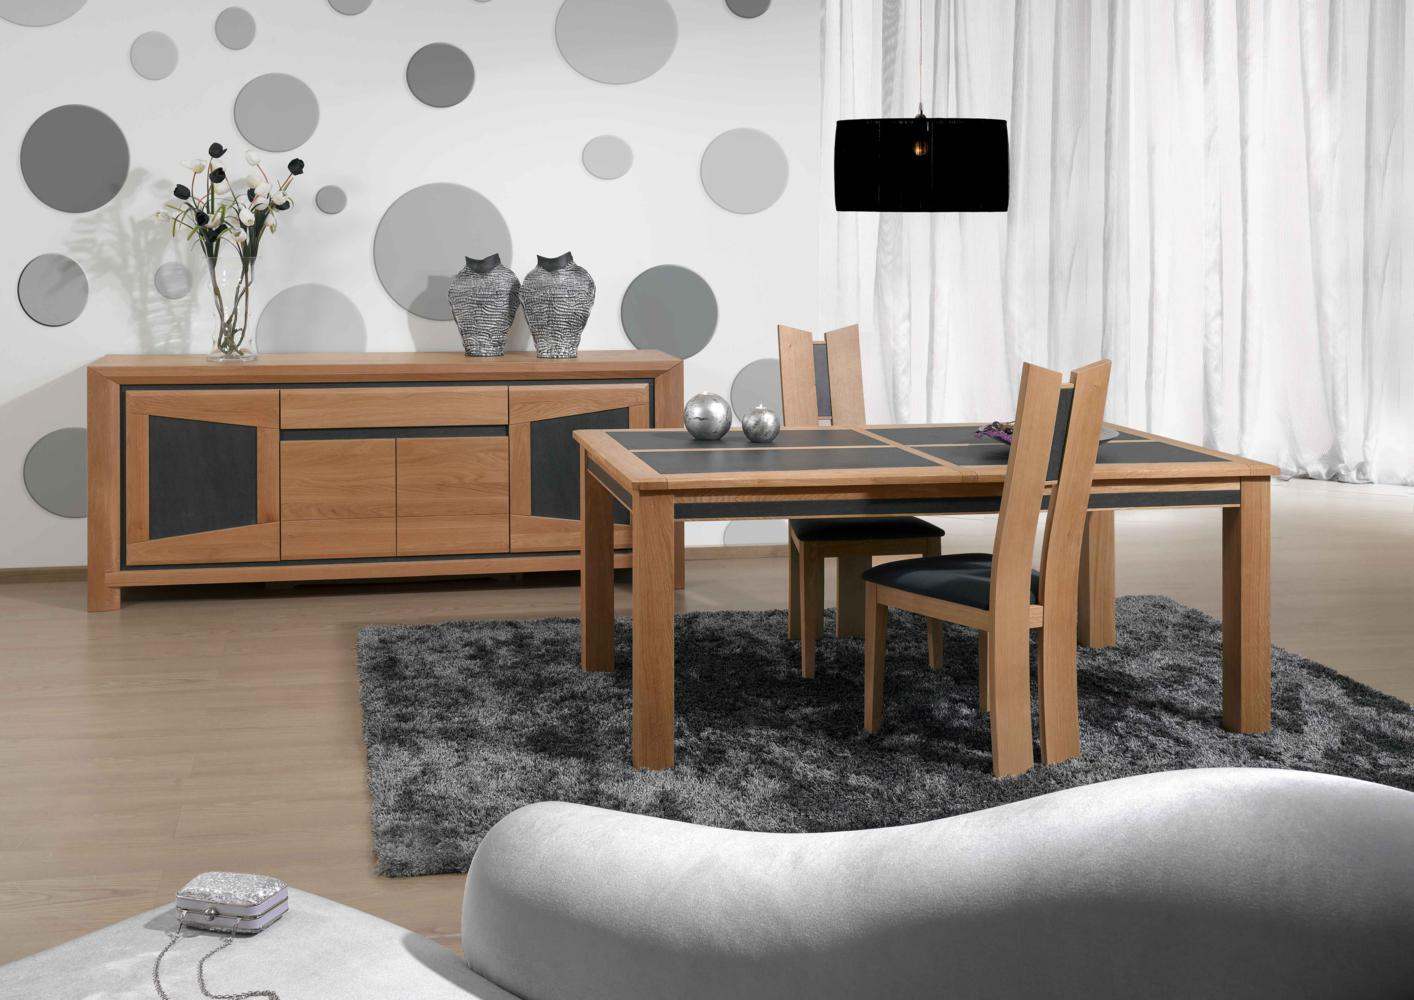 acheter votre table carree chene massif et ceramique 1. Black Bedroom Furniture Sets. Home Design Ideas